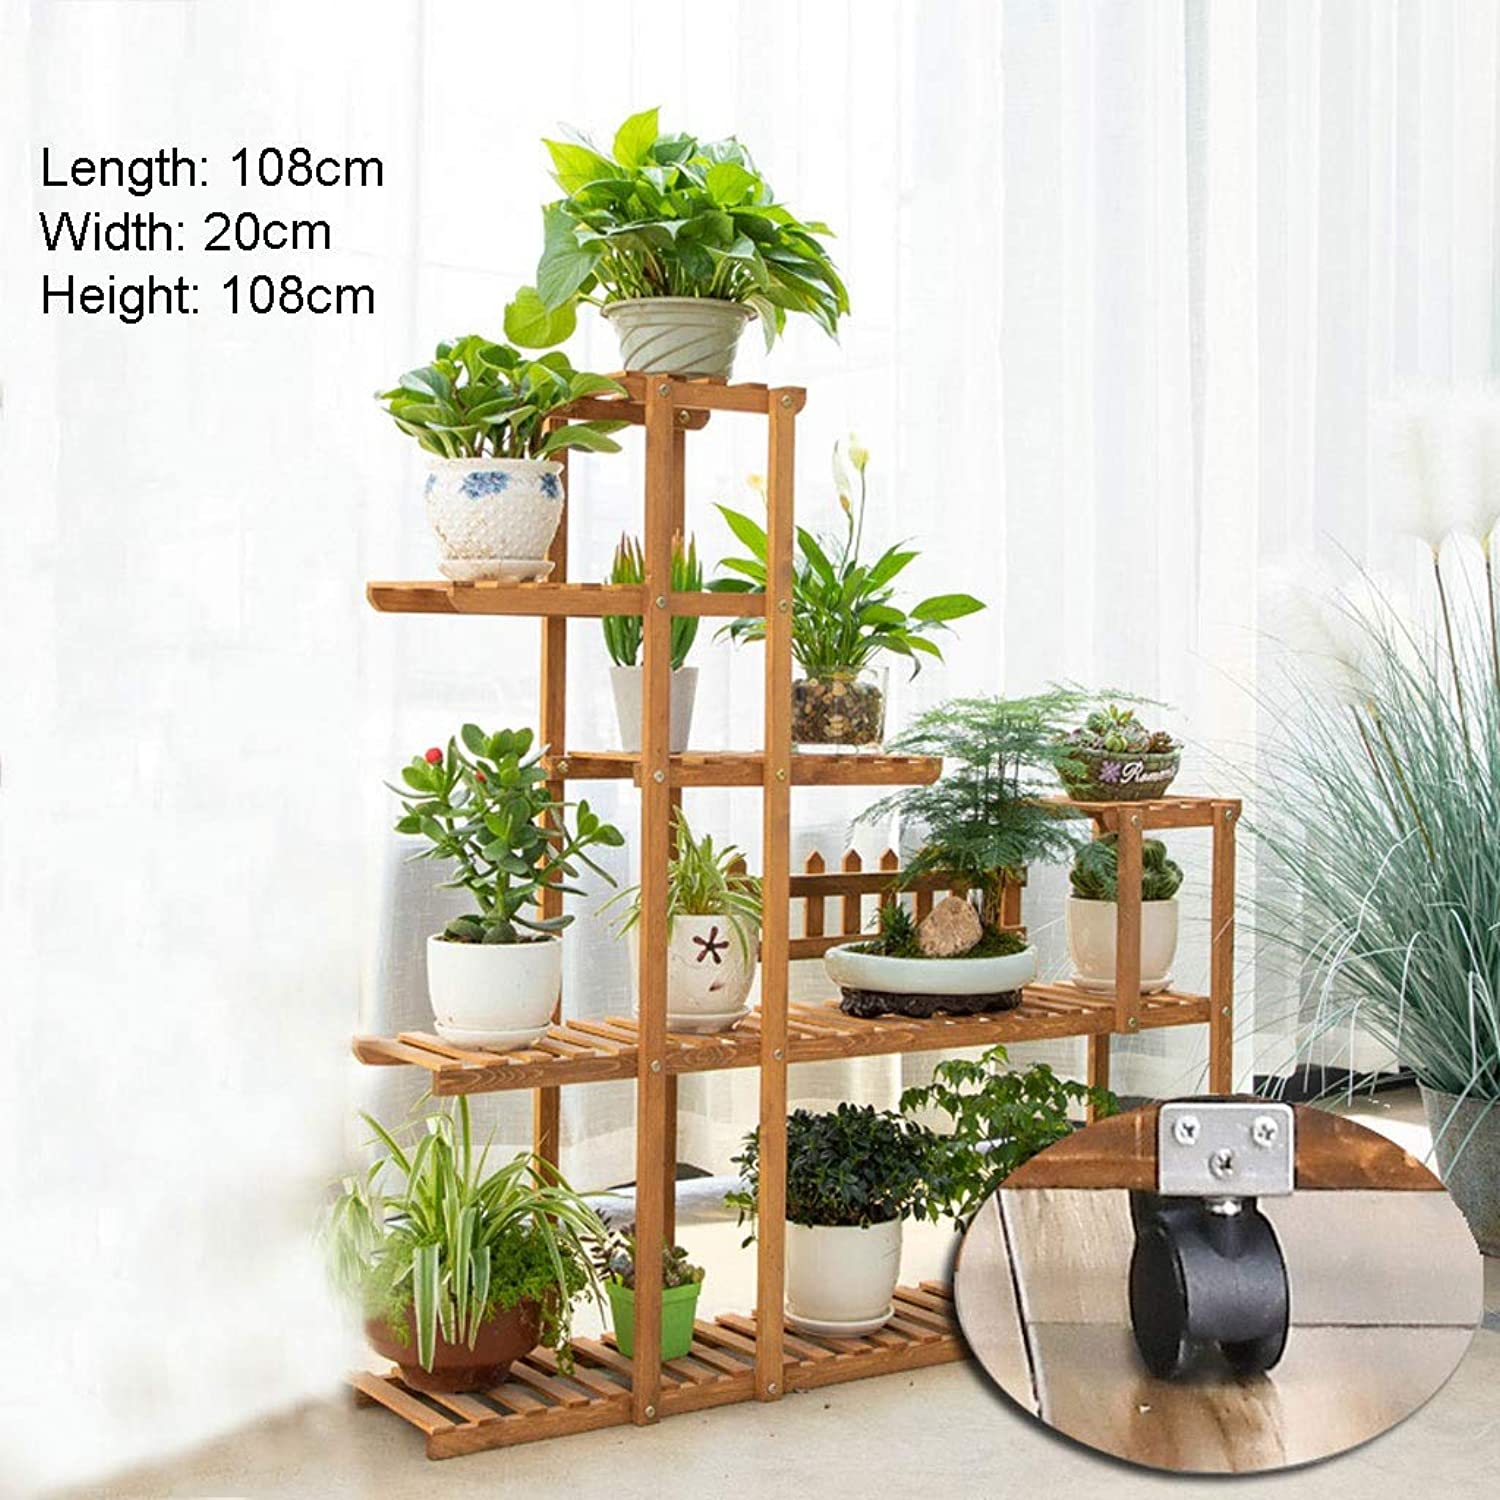 Flower racks - Solid Wood Flower Stand Living Room Balcony Plant Display Shelf Multi-Function Pot Rack Garden Plant Stand (color   with Wheels, Size   108  20  108cm)